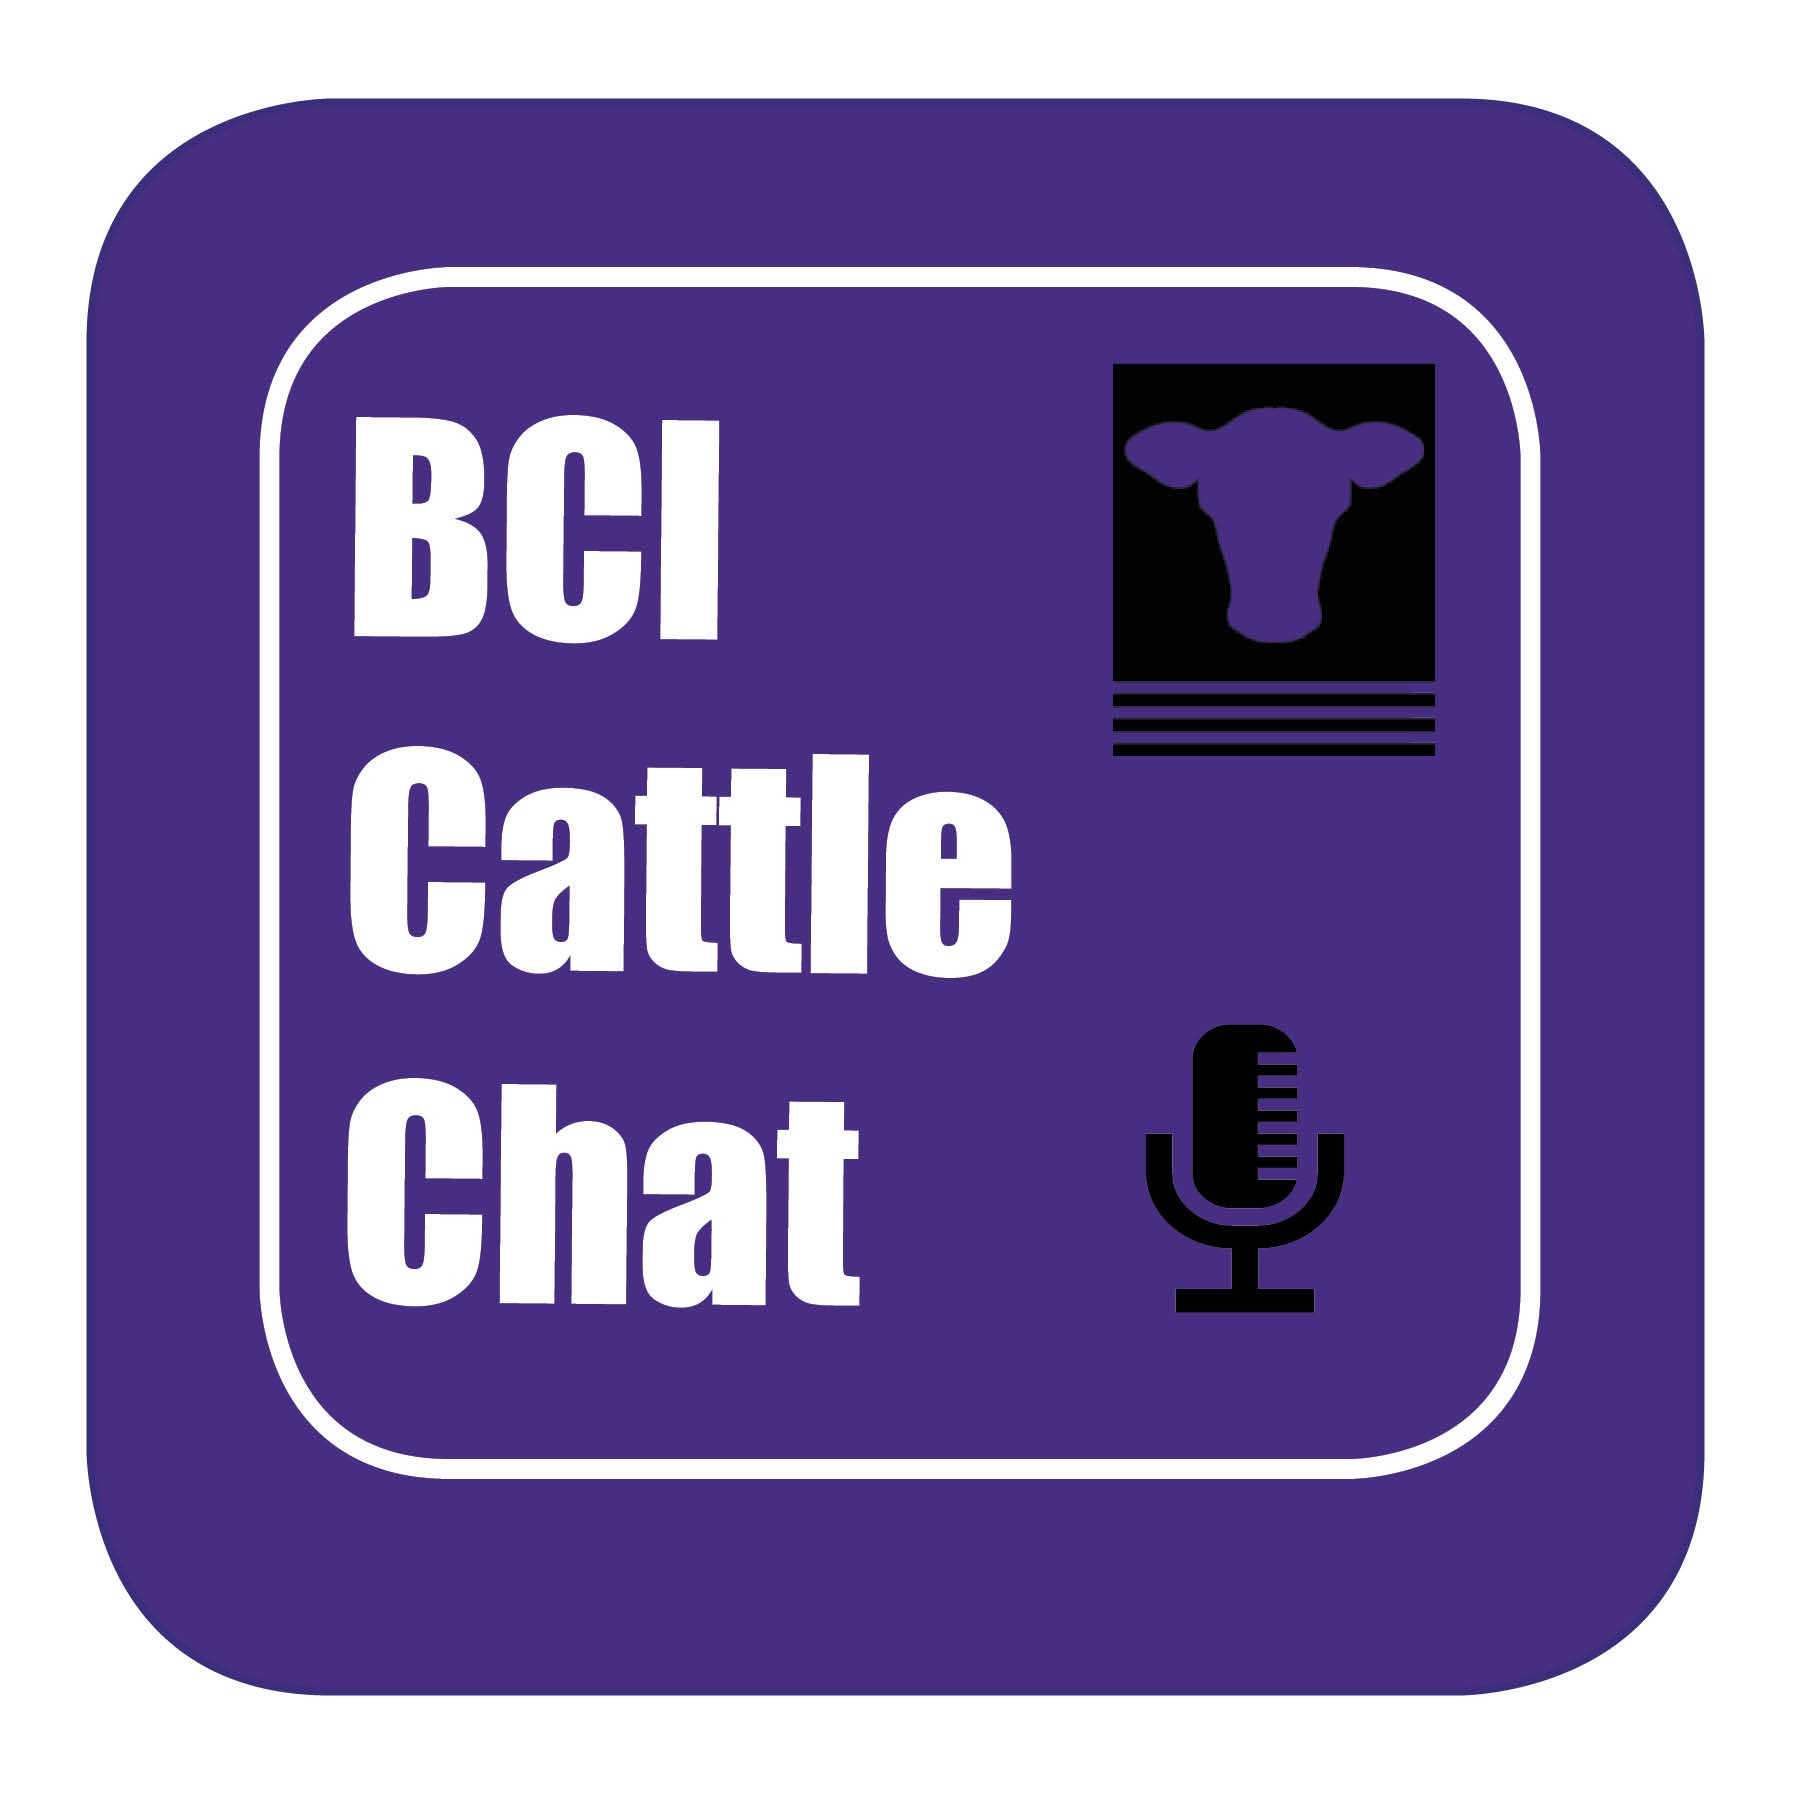 BCI Cattle Chat - Episode 31